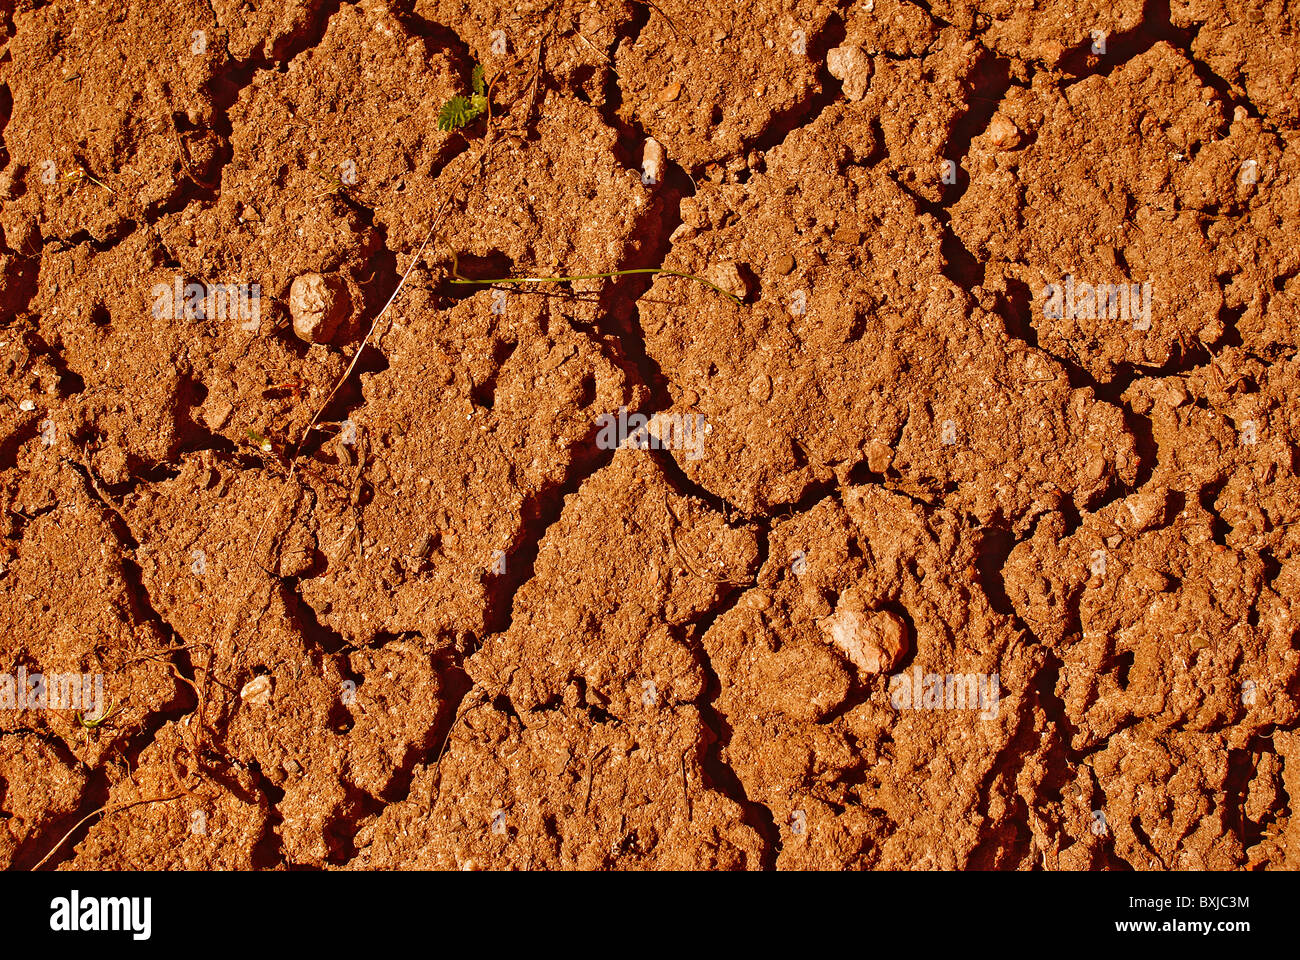 Cracked dry ground and small green sapling - Stock Image